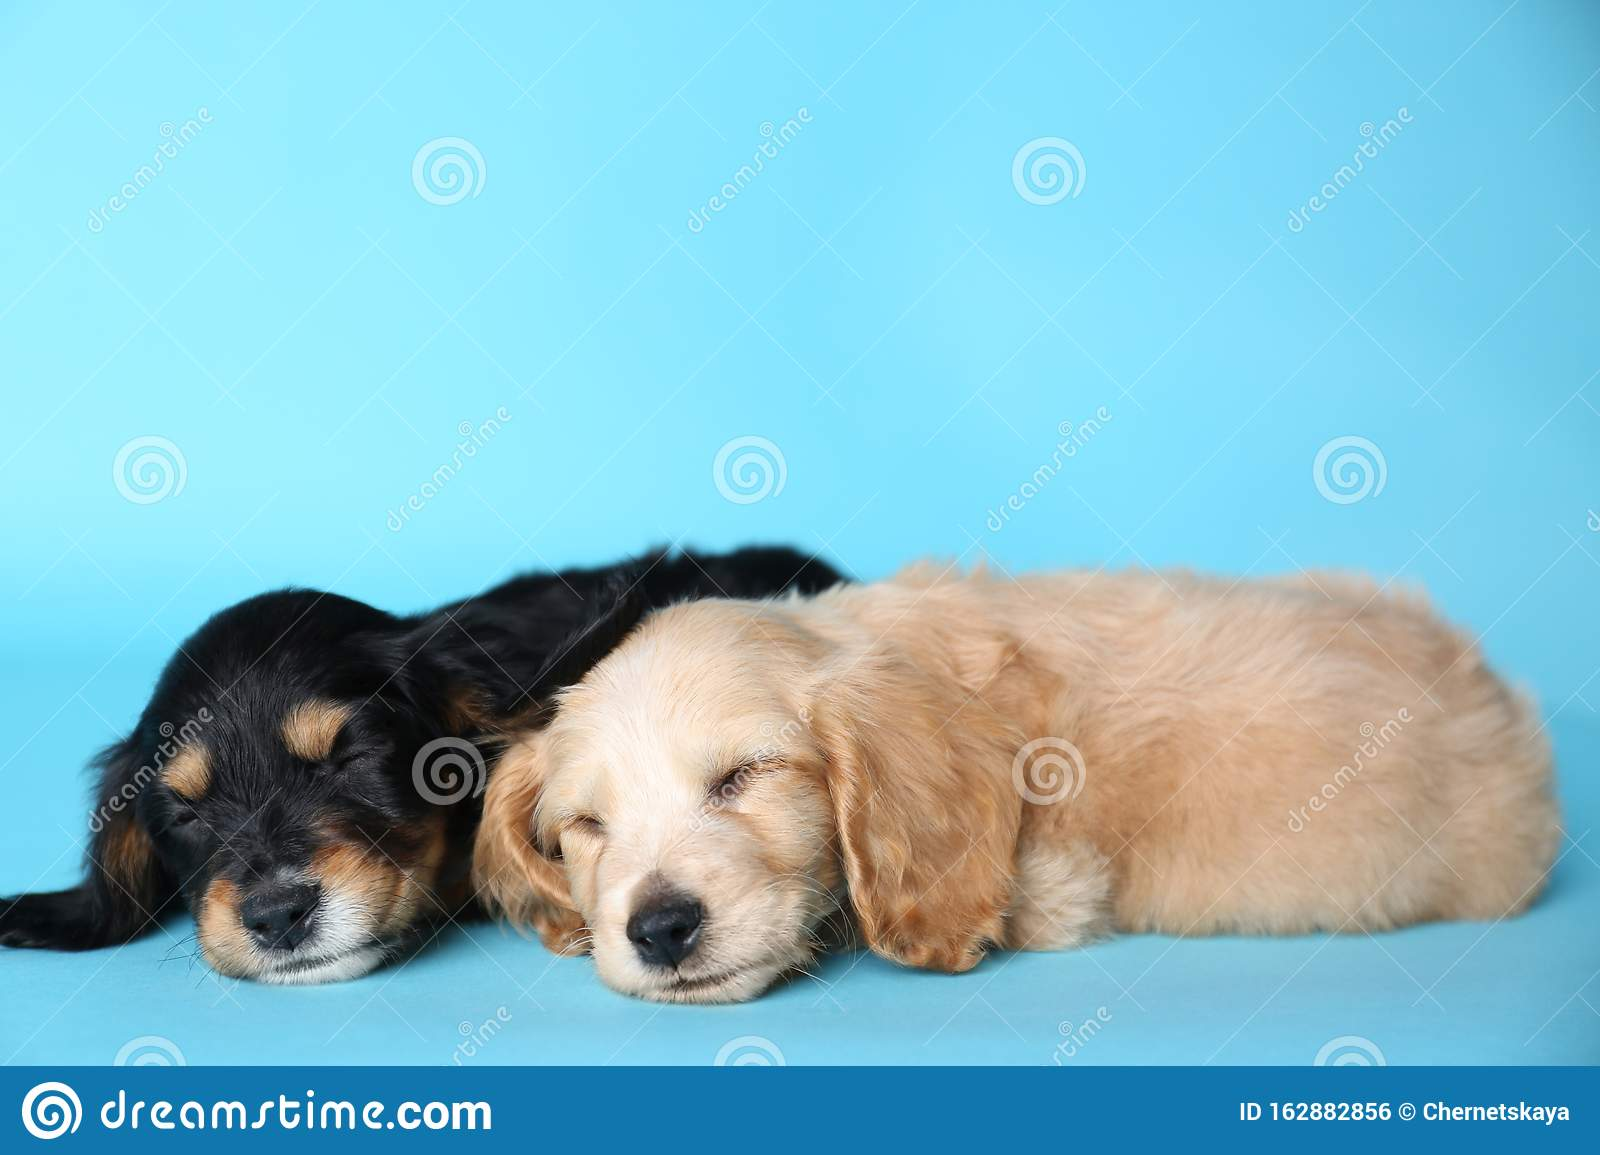 Cute English Cocker Spaniel Puppies Sleeping On Light Background Stock Photo Image Of Little Friendly 162882856